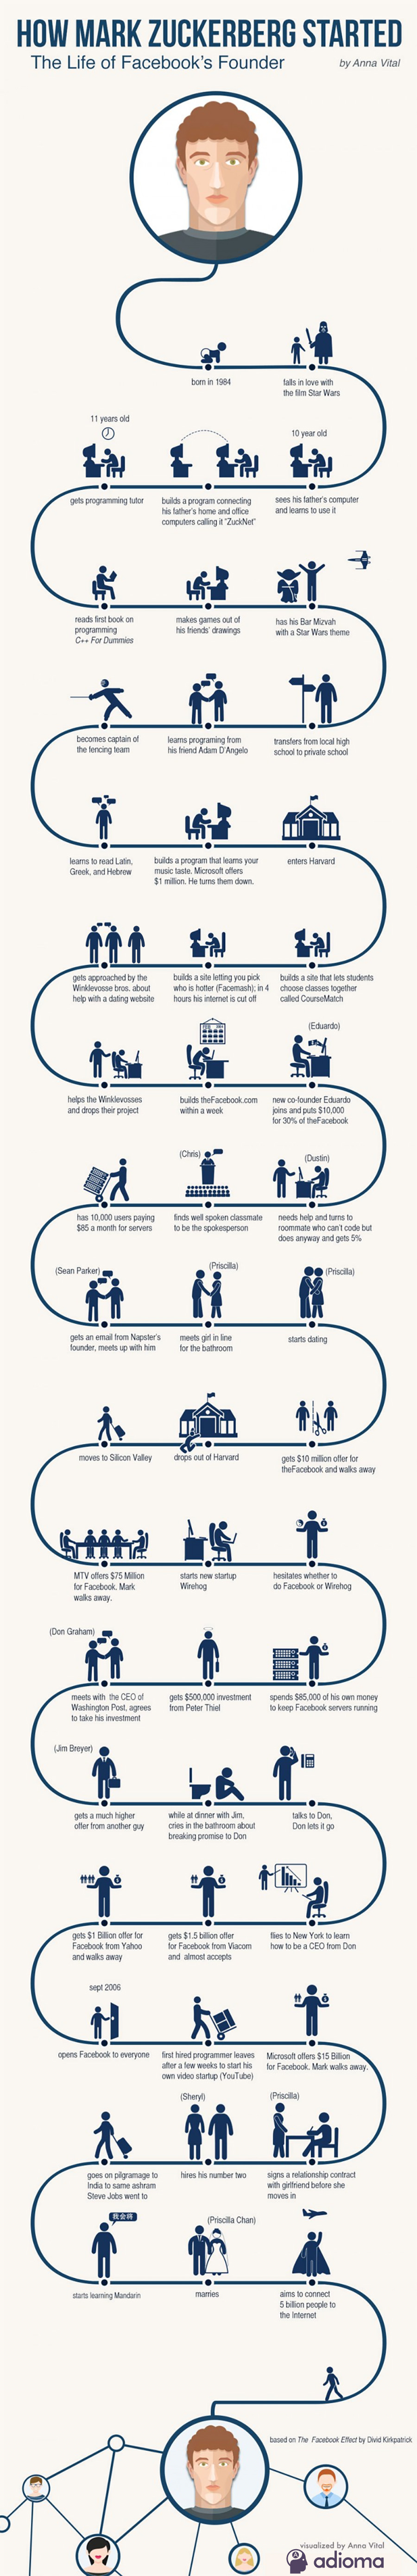 How Mark Zuckerberg Started - Infographic Biography - Adioma